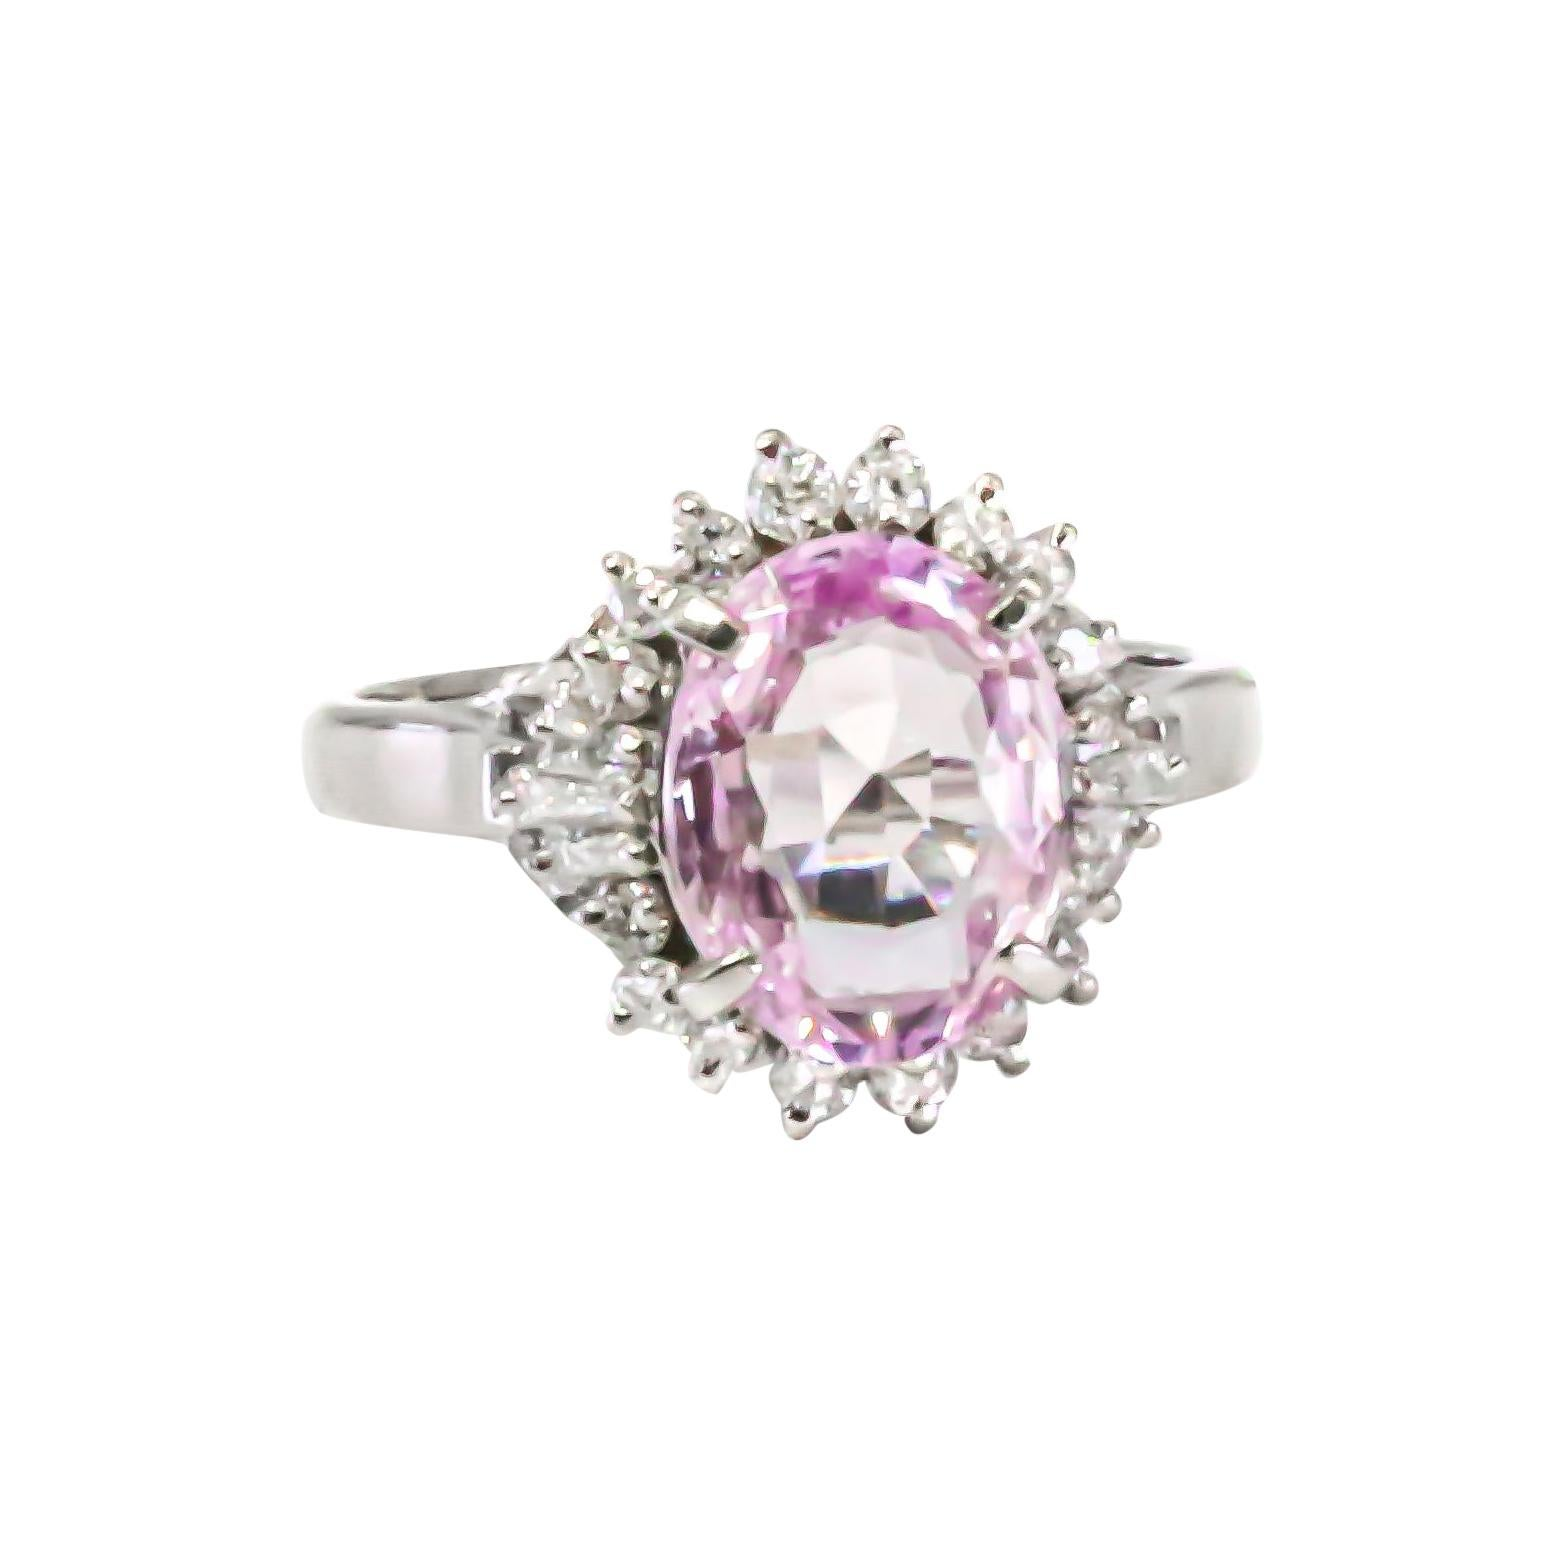 GIA Certified No Heat Pink Sapphires